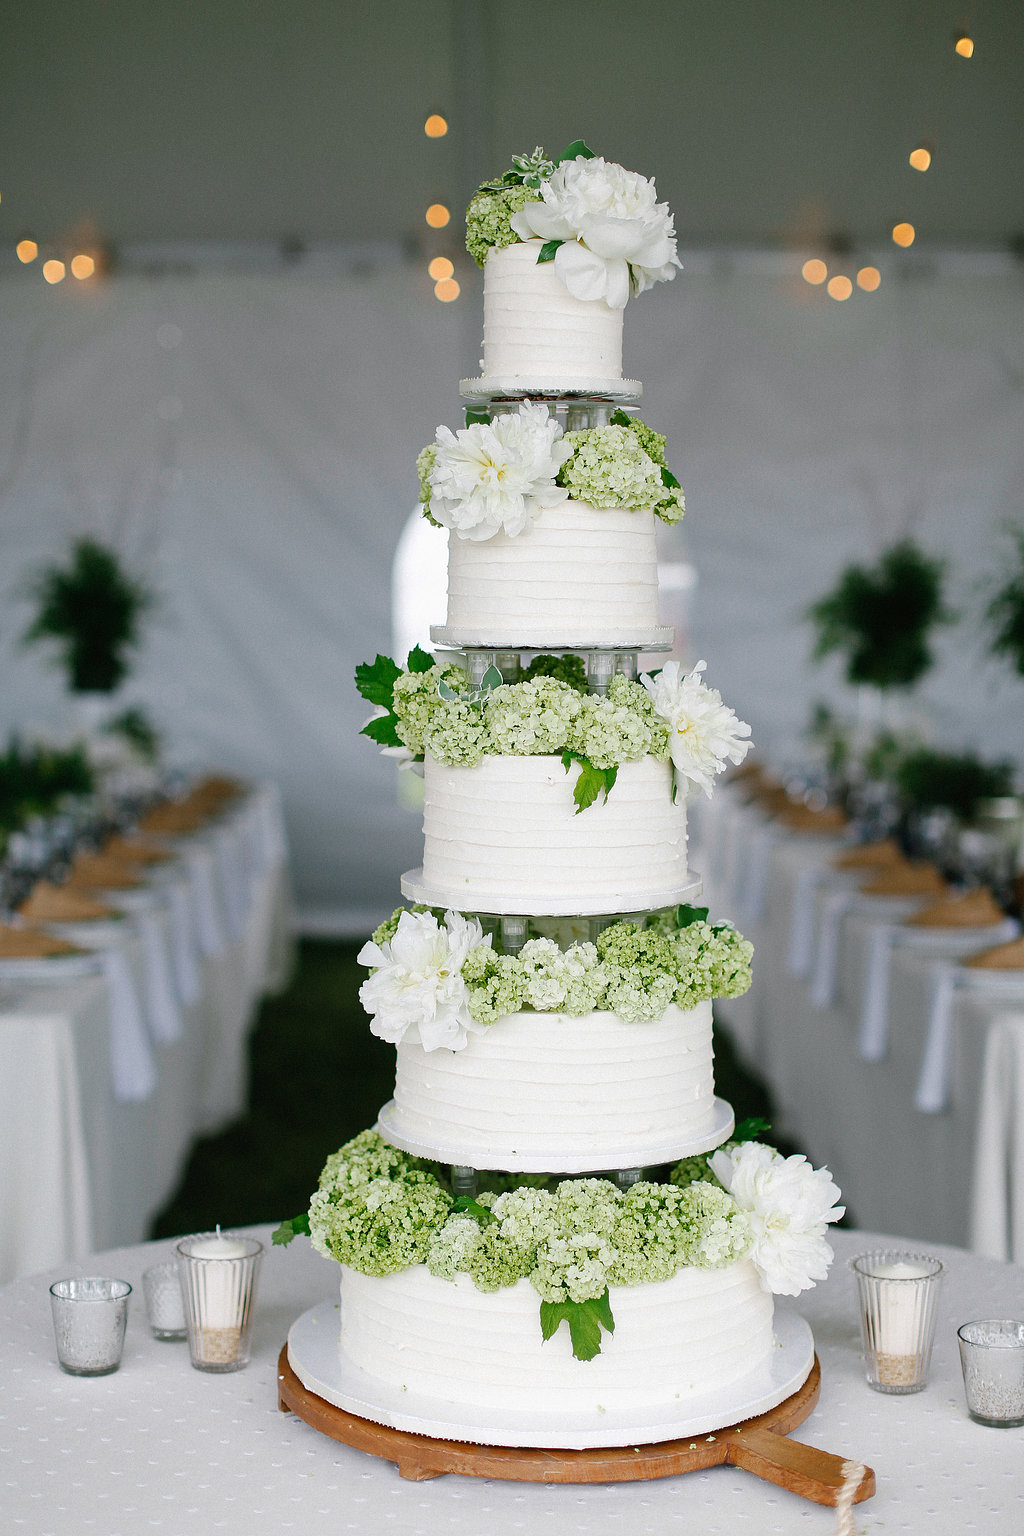 Pantone's 2017 Color of the Year Greenery wedding inspiration tall white wedding cake with fresh green hydrangea flower tiers